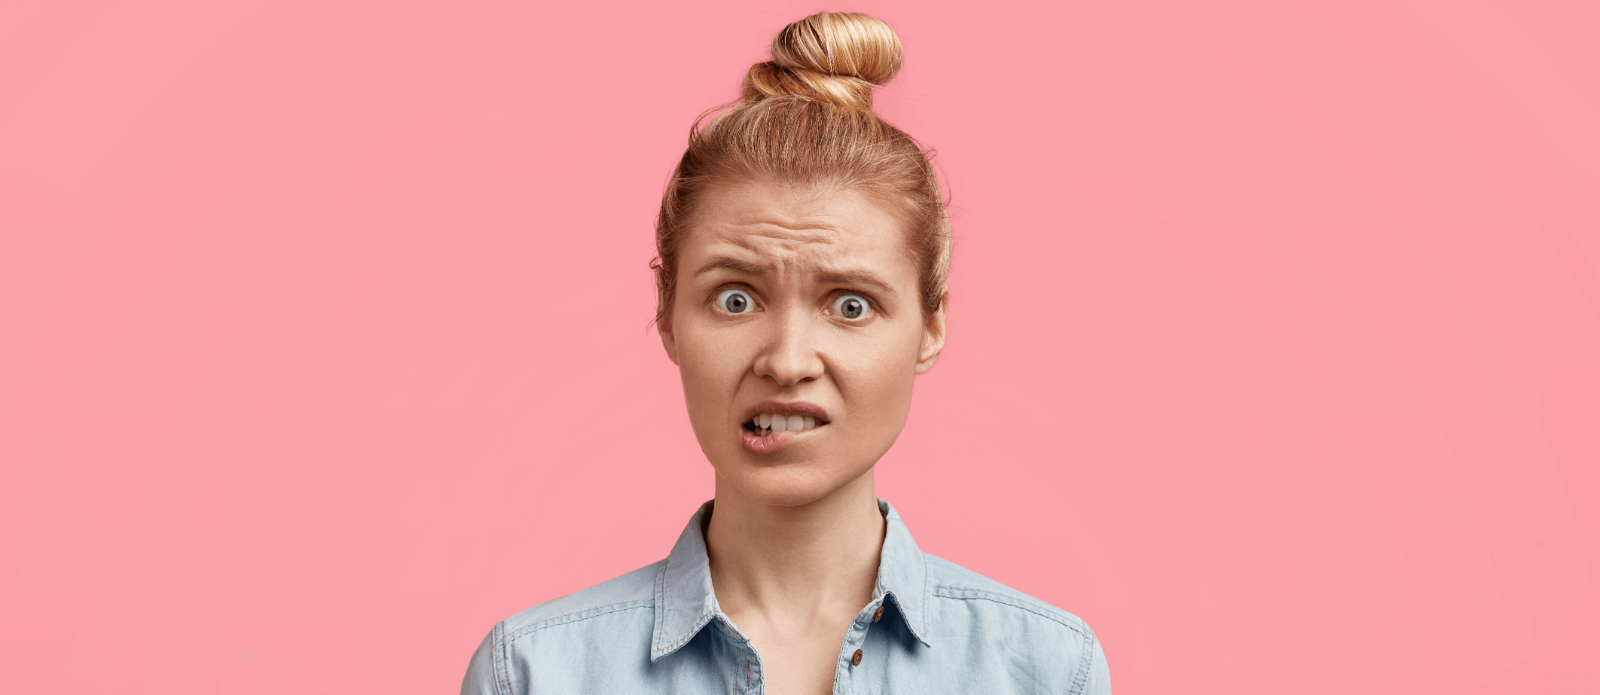 Lip Biting When Anxious: Causes, Solutions and More